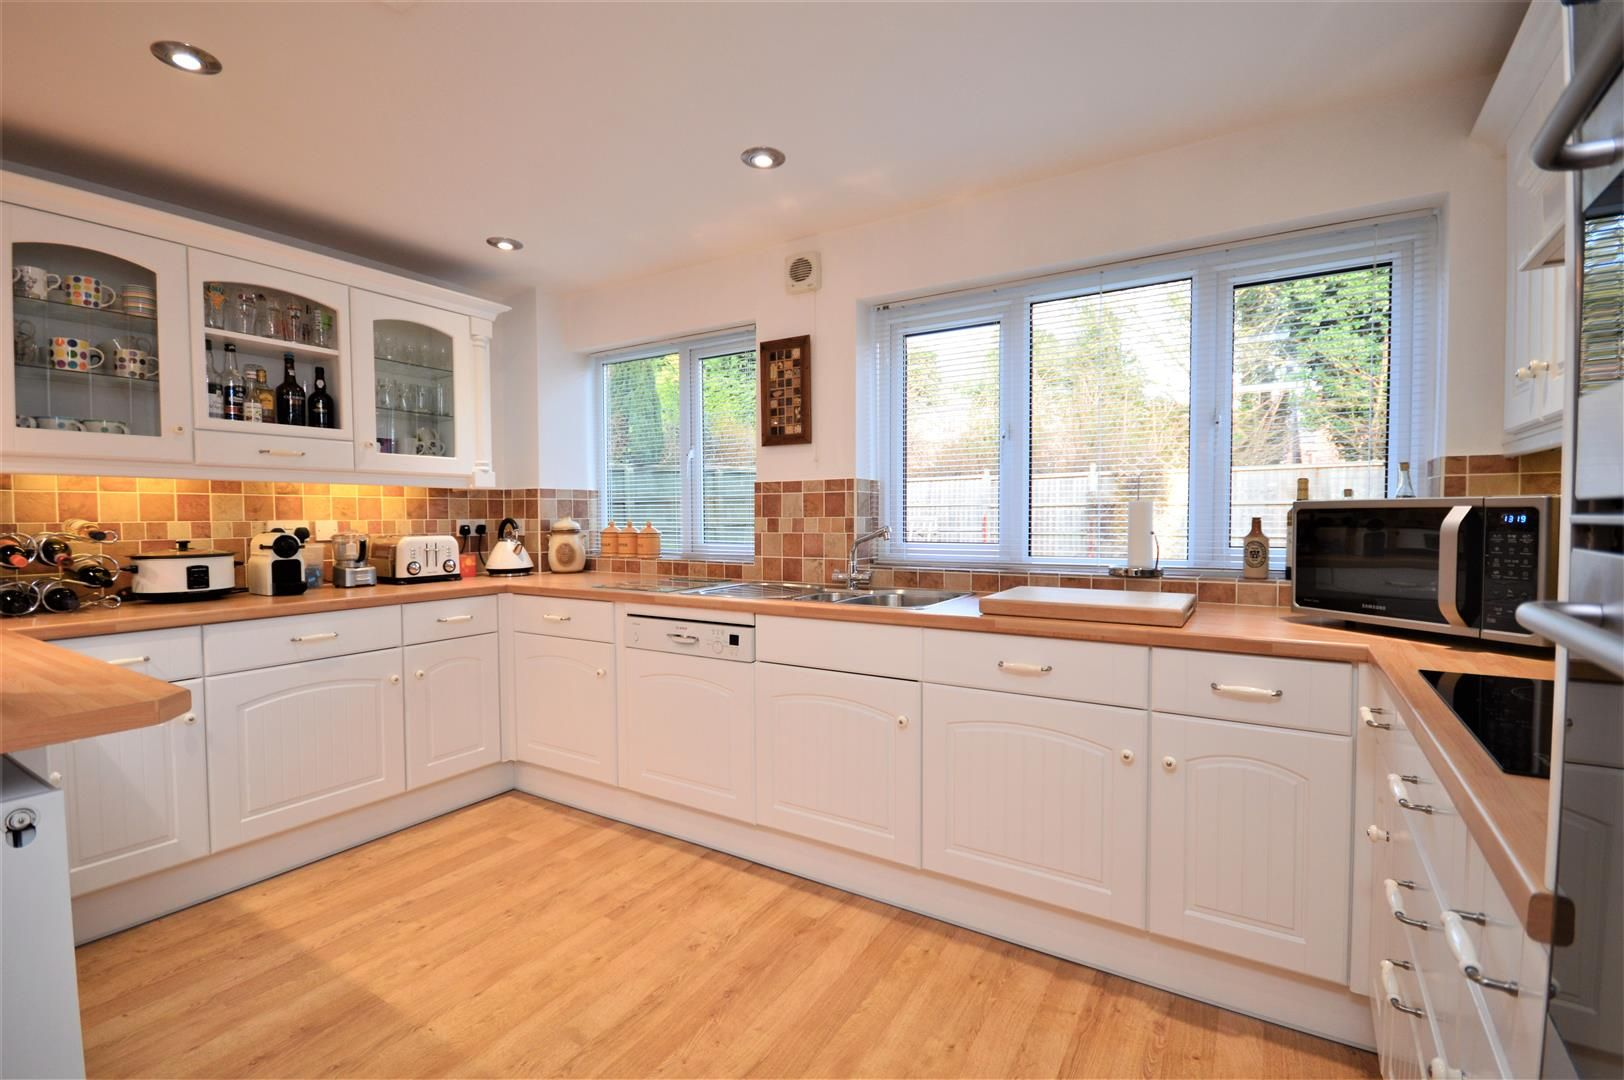 4 bed detached for sale in Hereford 7